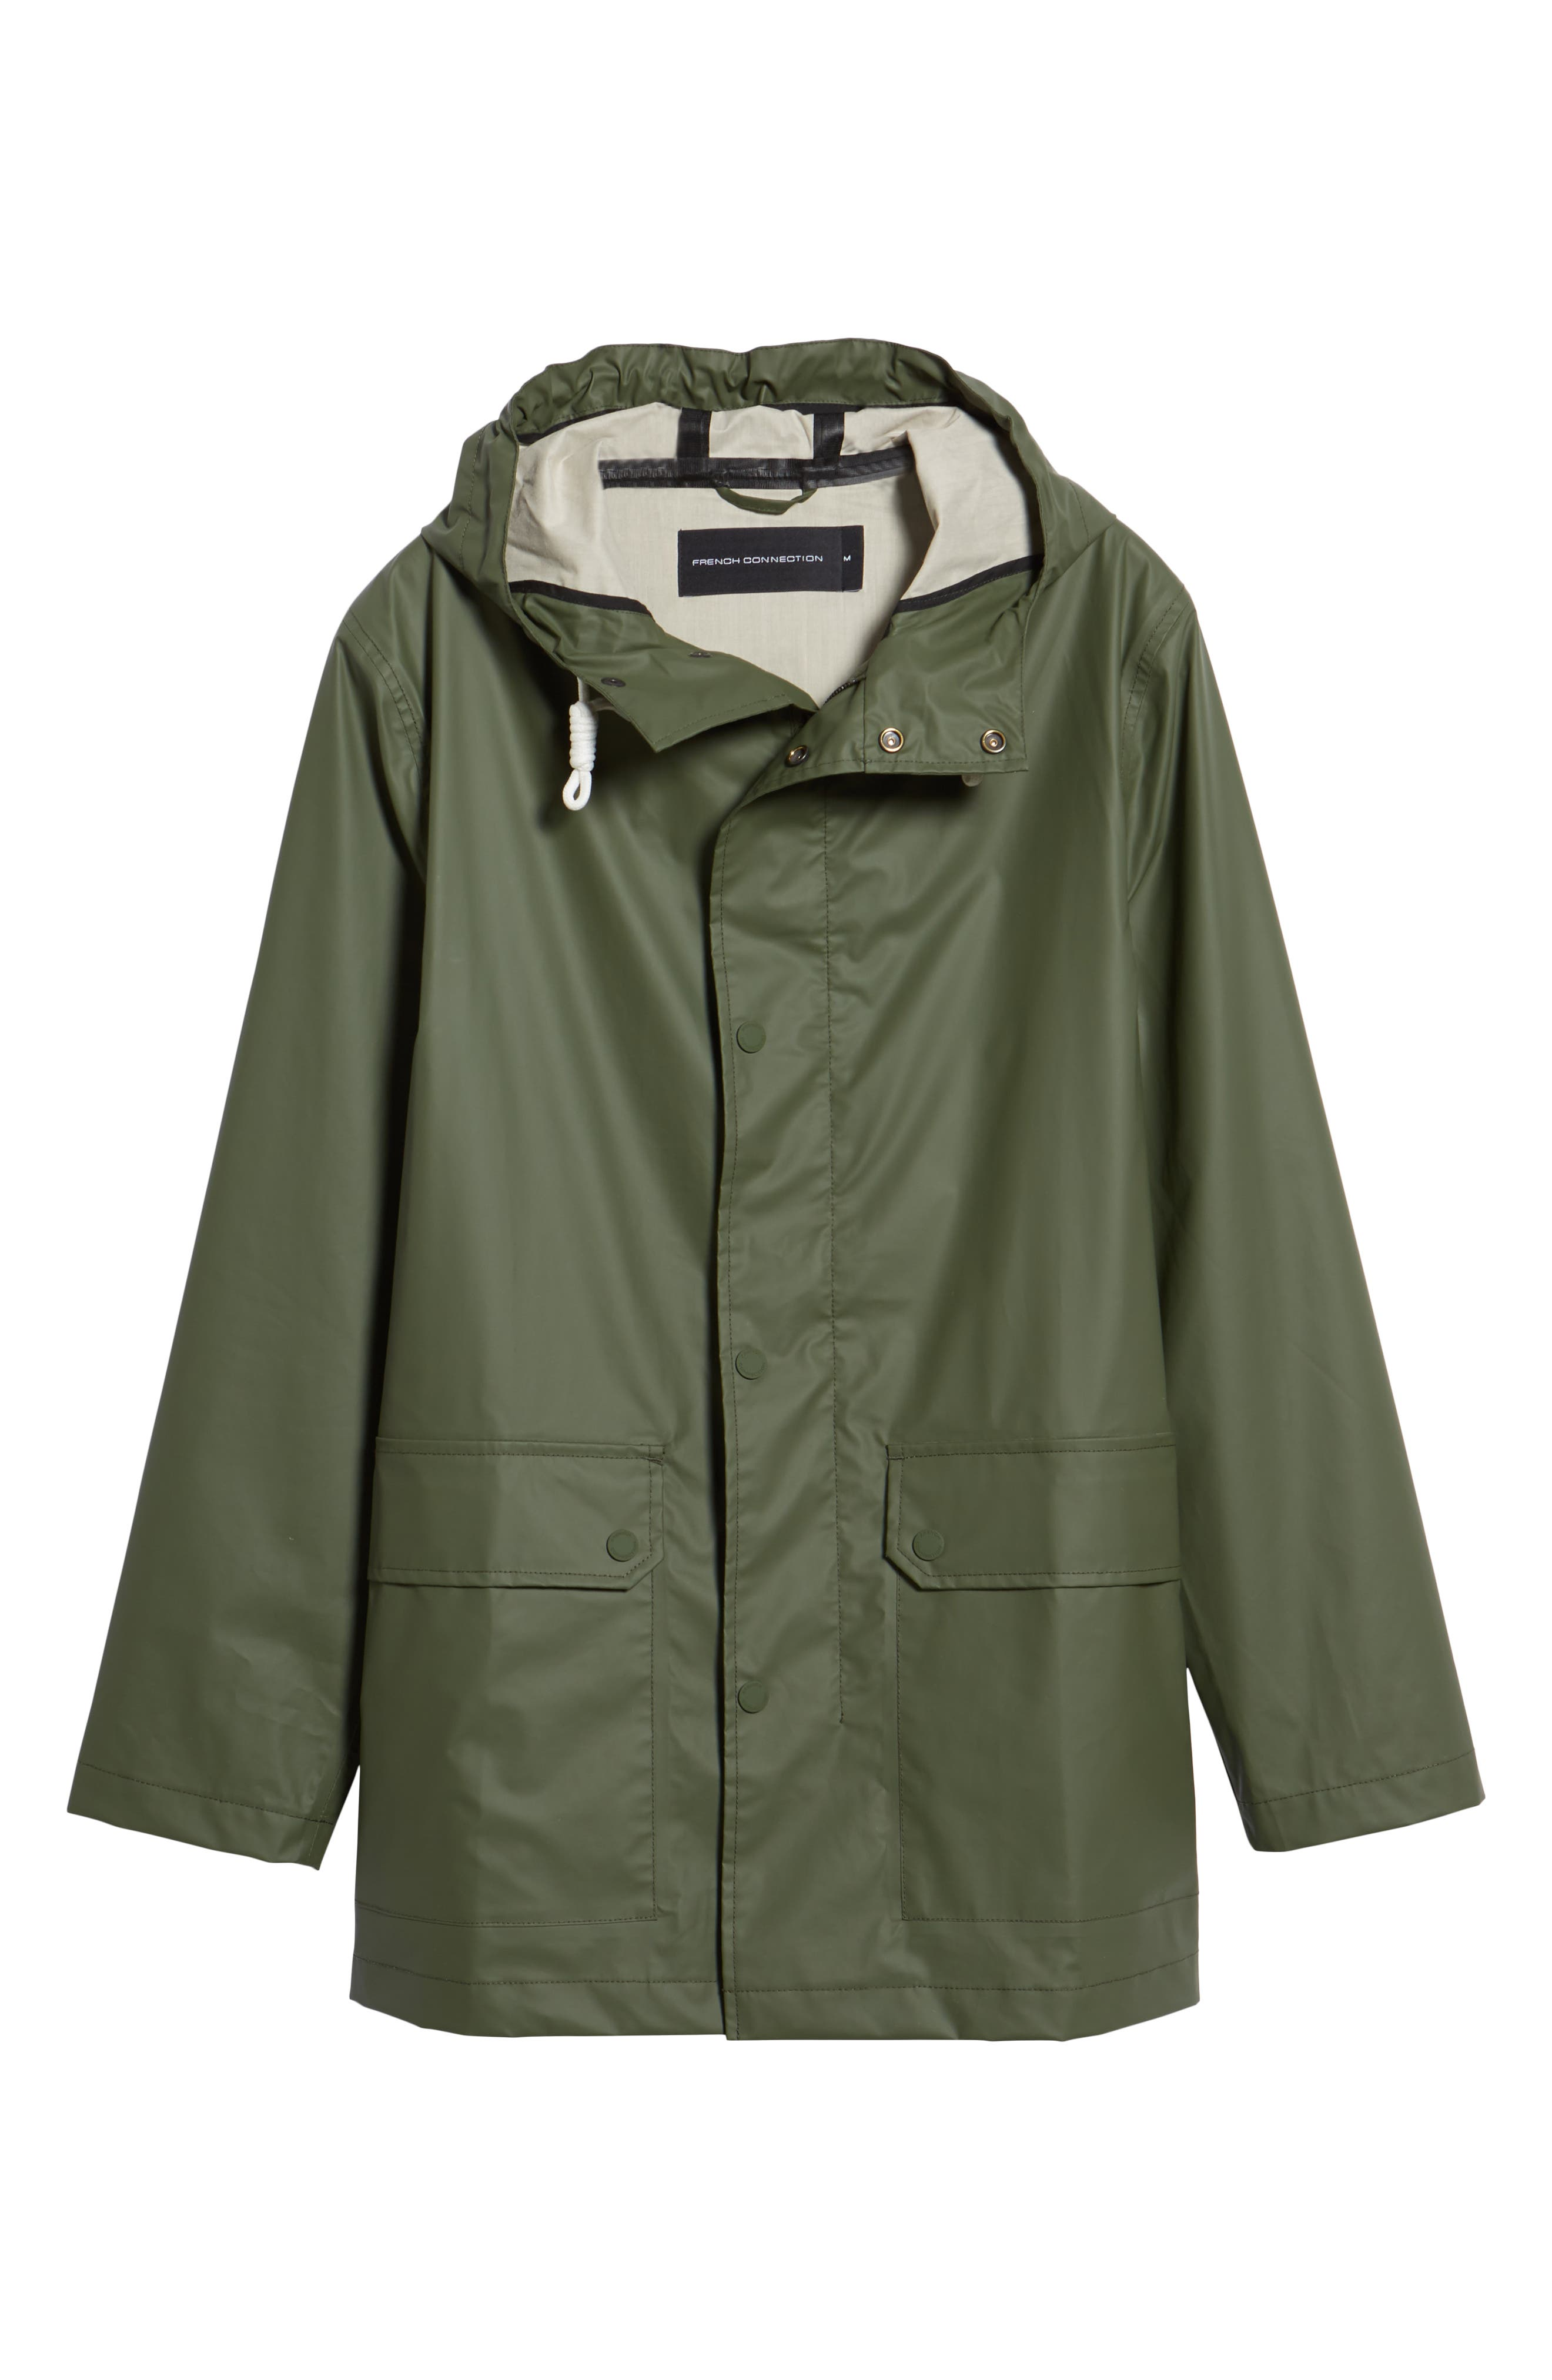 FRENCH CONNECTION,                             Rubber Coated Raincoat,                             Alternate thumbnail 5, color,                             300